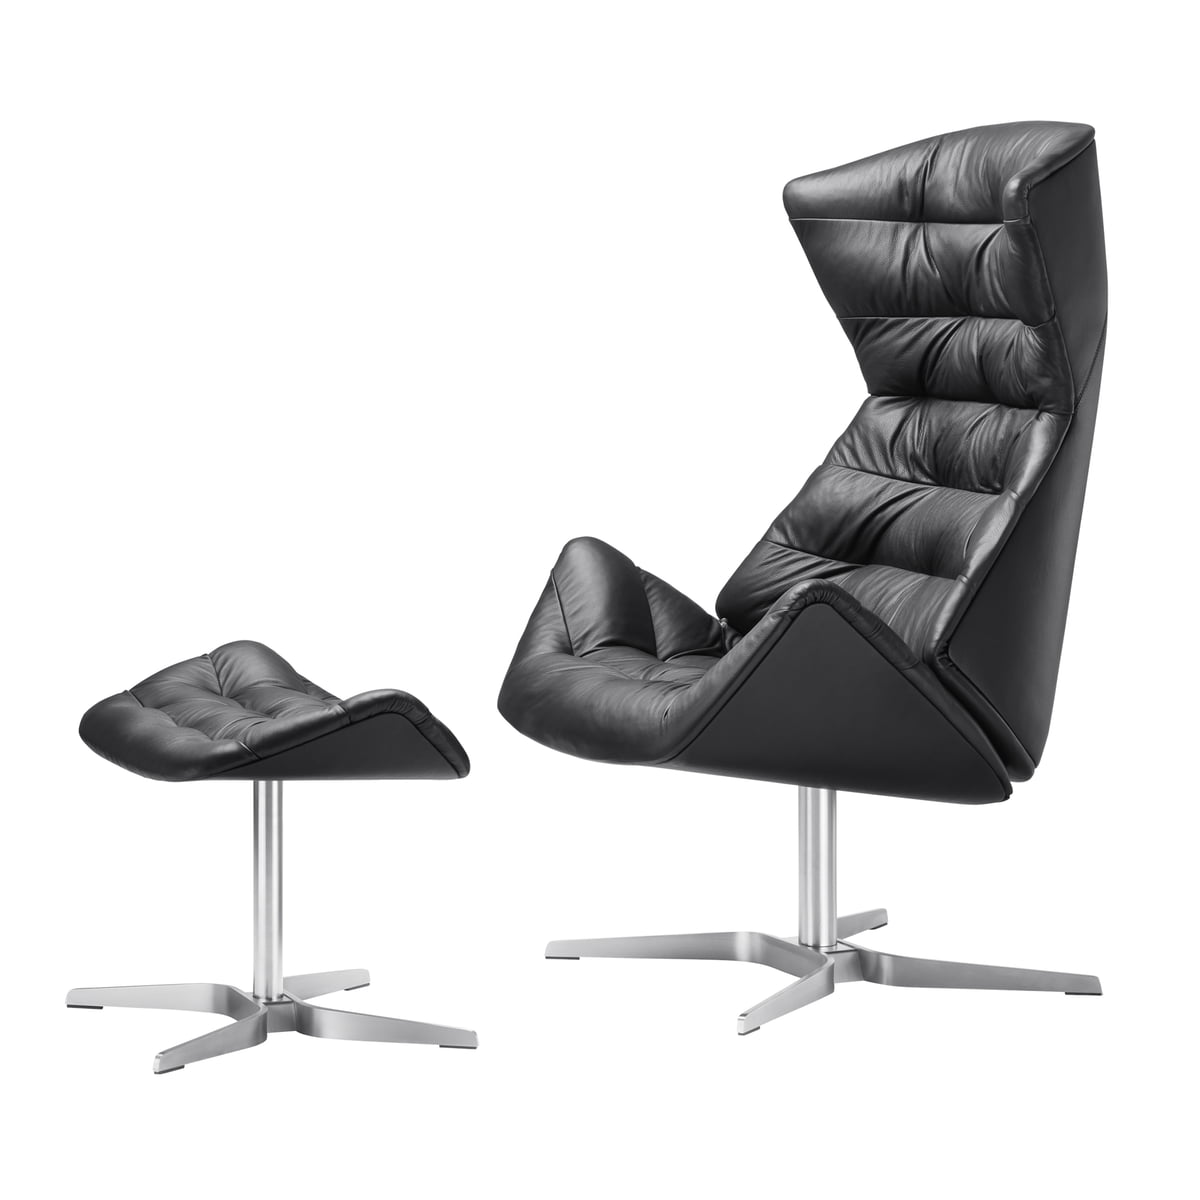 Lesesessel mit hocker perfect lounge lounge sessel lola for Ohrensessel 808